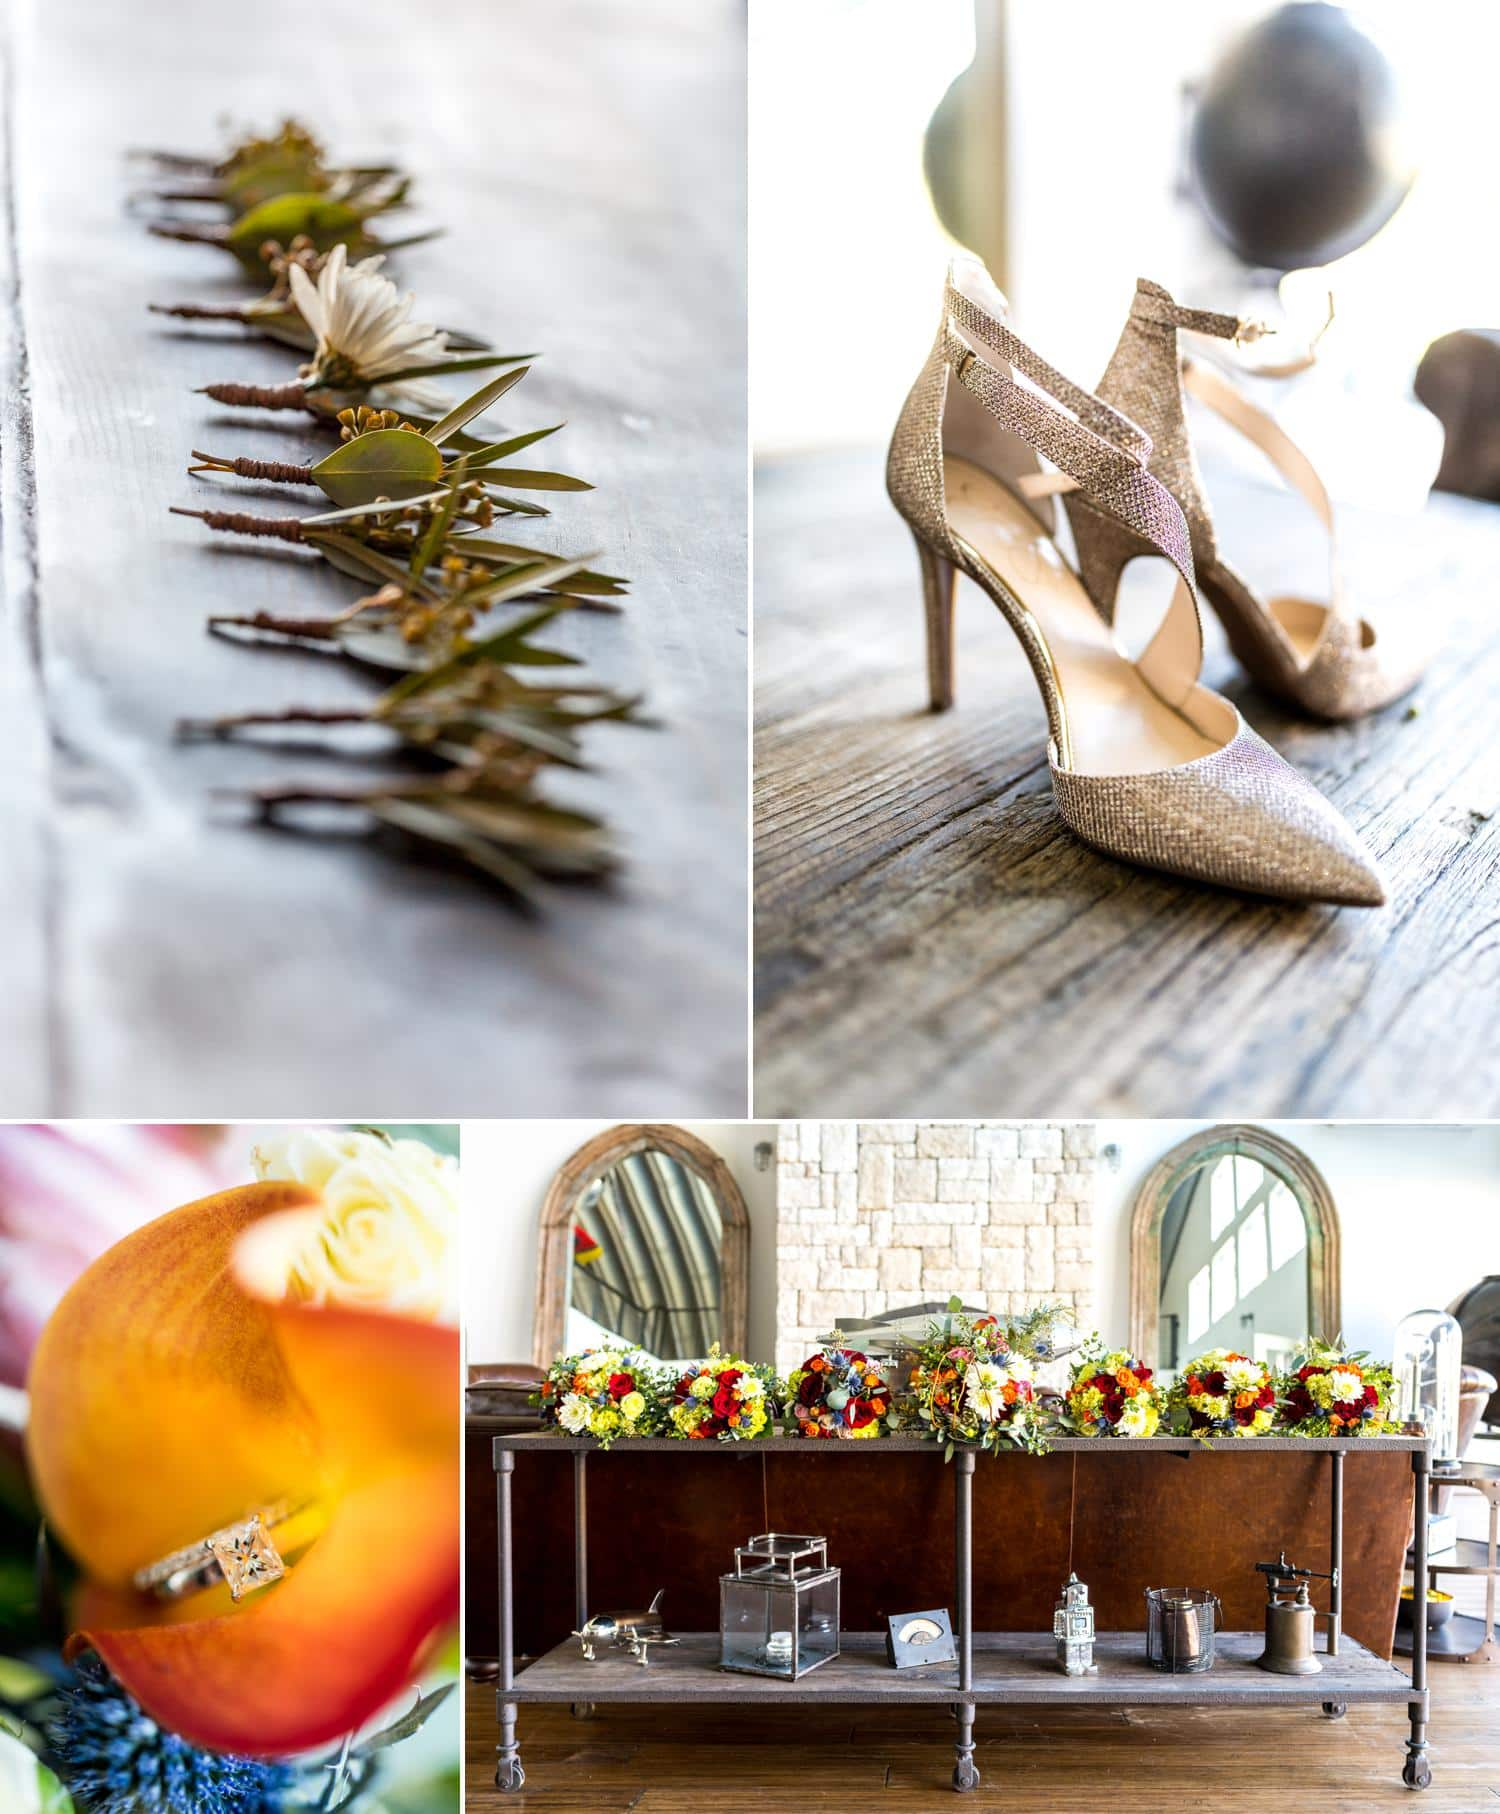 Wedding day details bridal shoes, boutonnieres and rustic wedding flowers.